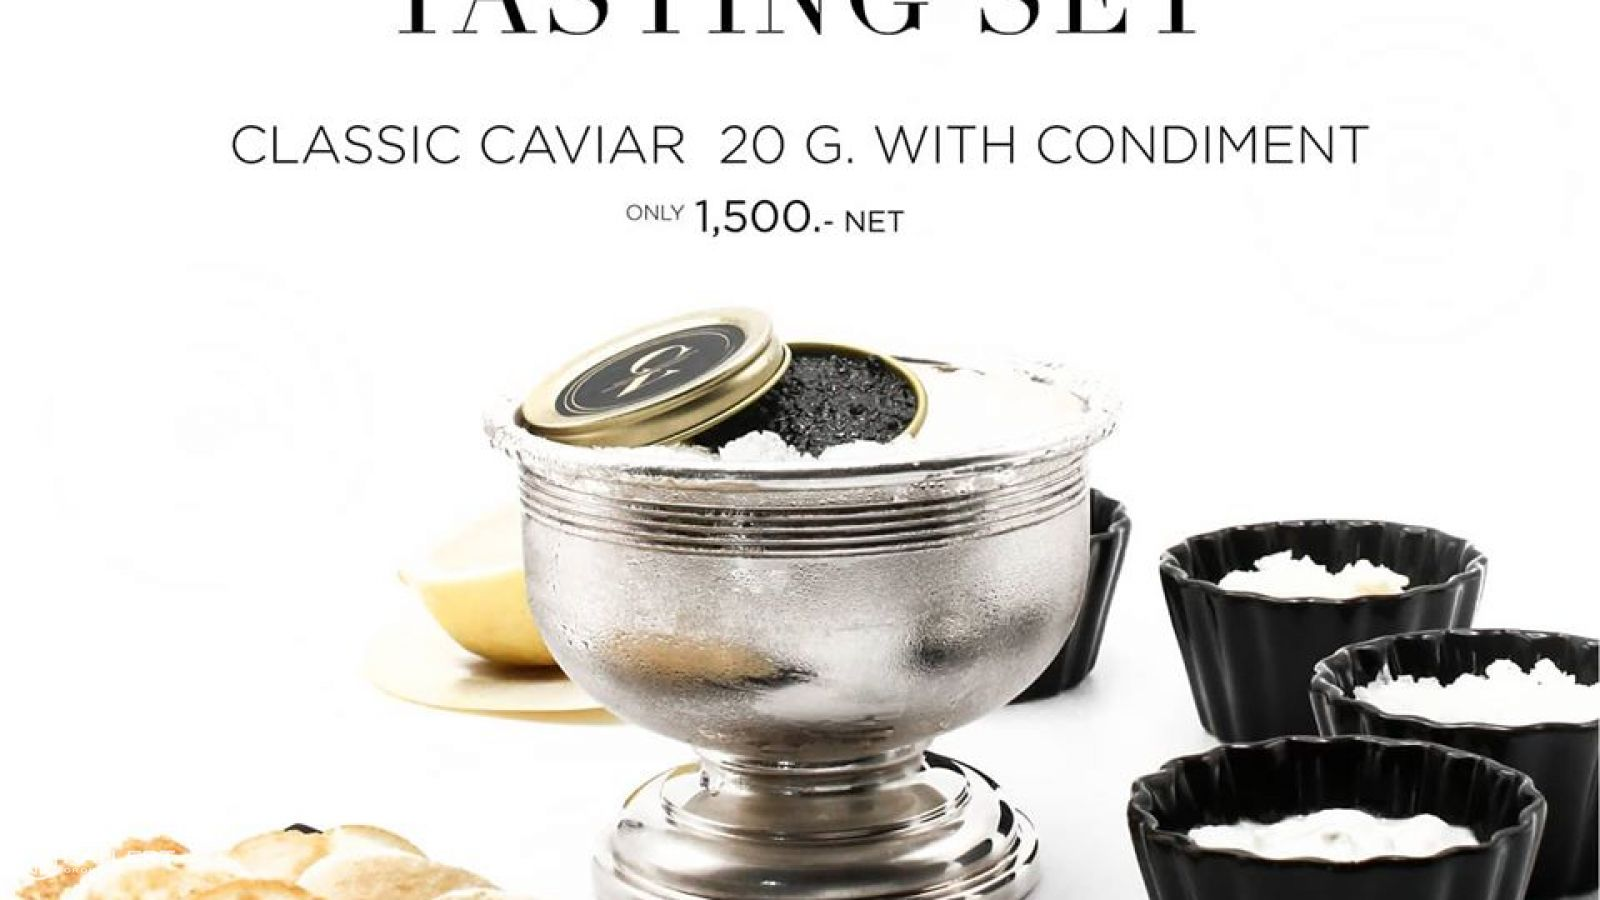 Caviar Tasting Set Delivery